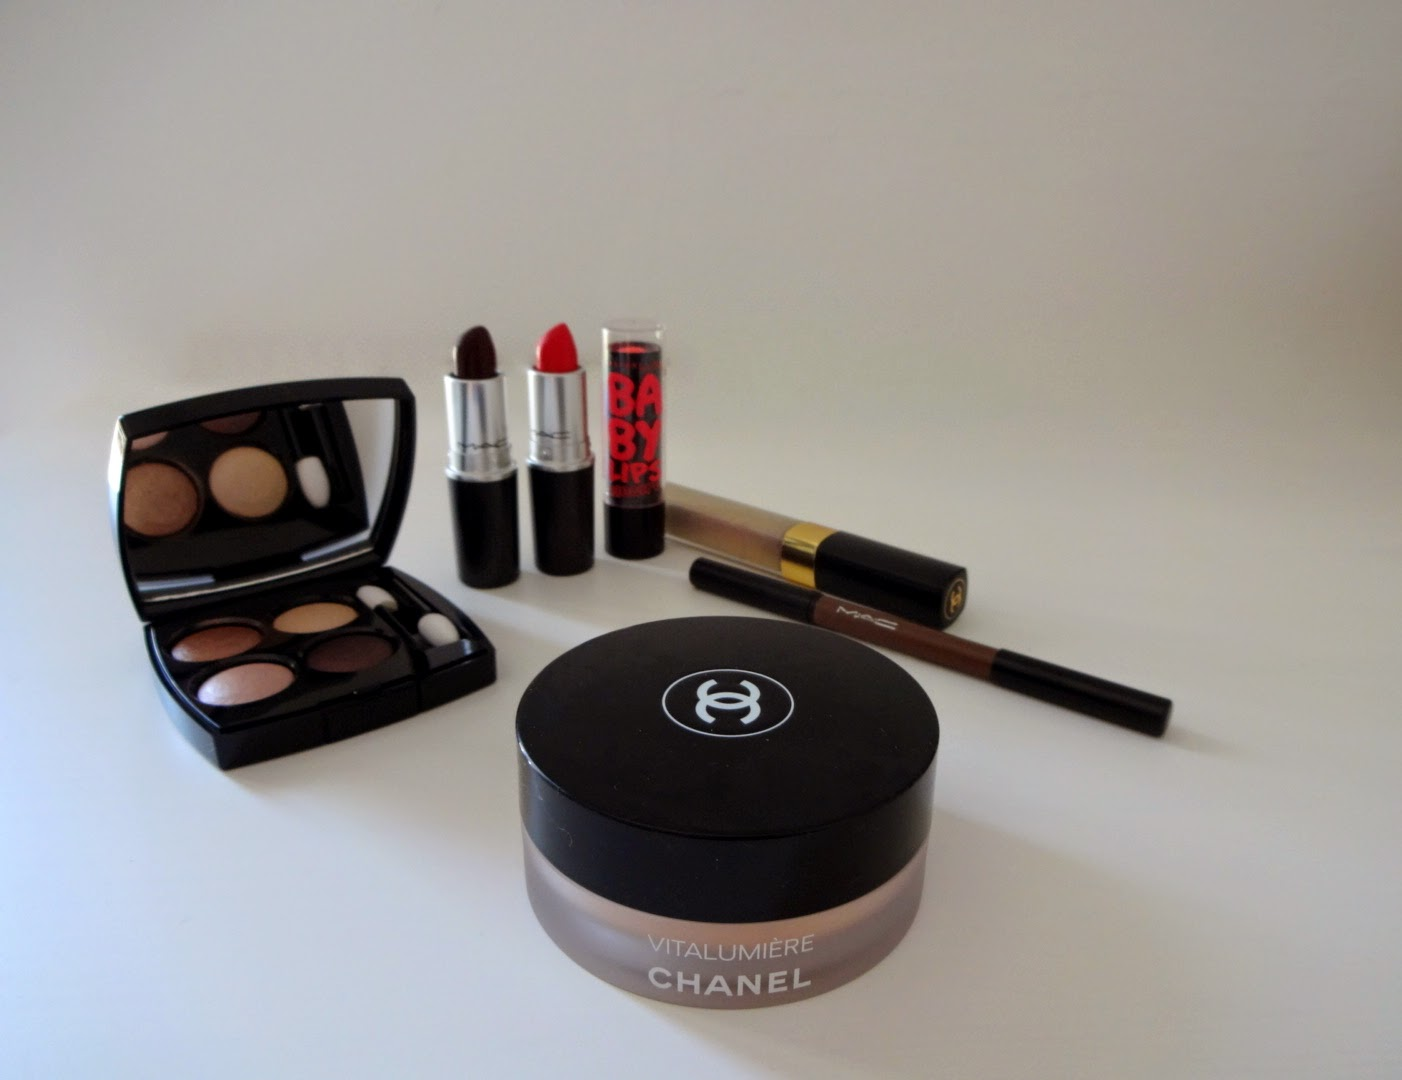 CHANEL Lèvres Scintillante 191 Songe, MAC lingering kiss, mac good kisser, mac a novel romance, baby lips electro strike a rose, chanel vitalumiere, chanel les 4 ombres poesie, mac velux brow liner deep dark brunette